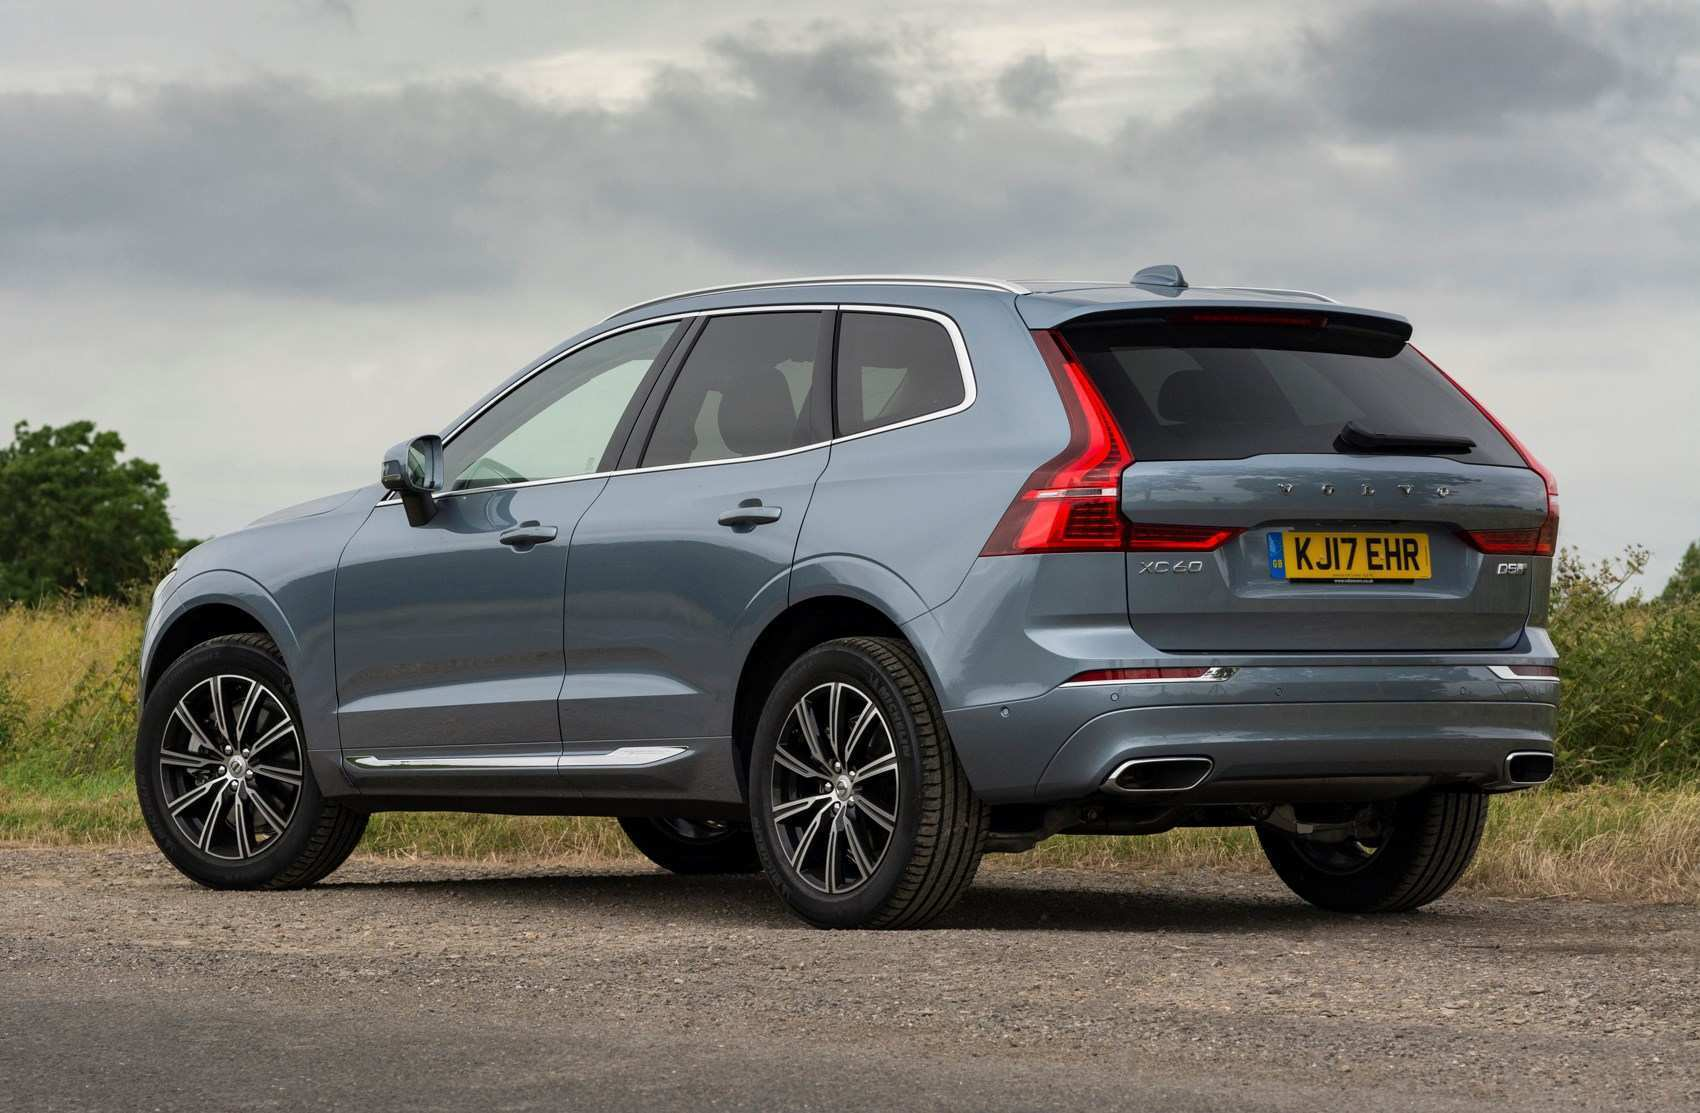 83 New When Will 2020 Volvo Xc60 Be Available Photos by When Will 2020 Volvo Xc60 Be Available